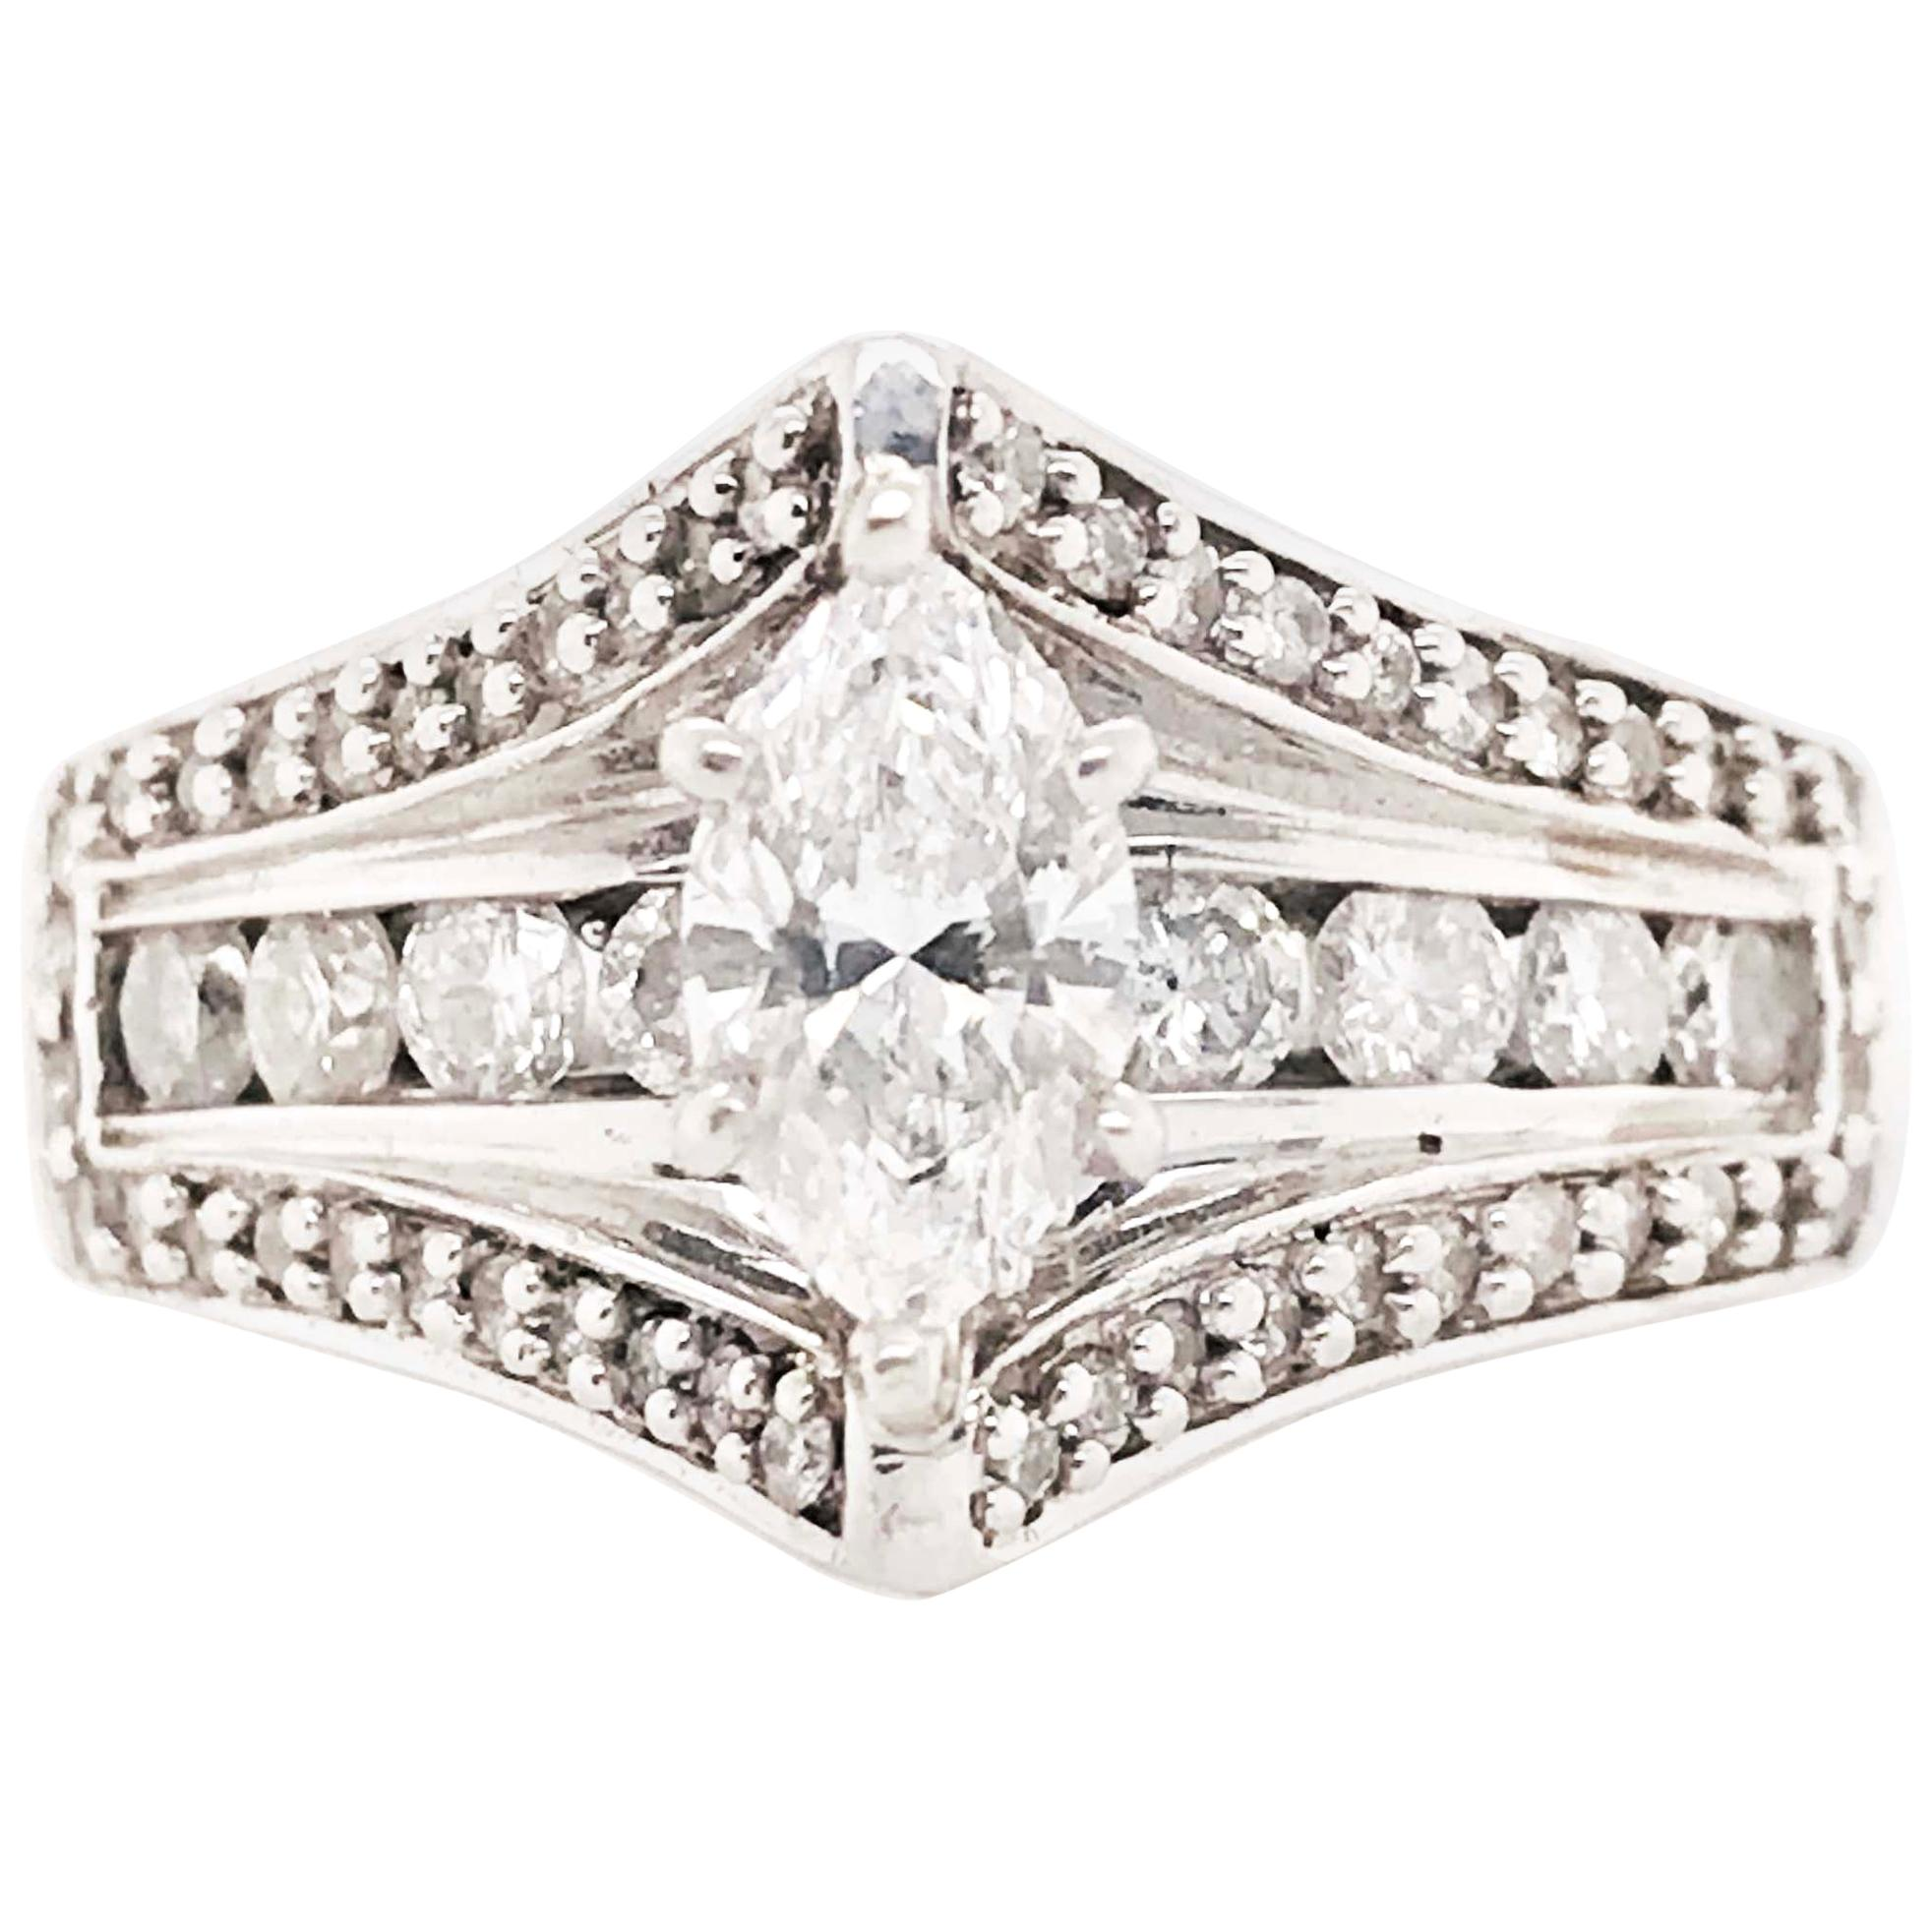 Marquise Diamond Engagement Ring in 14 Karat White Gold with 1.80 Carat Diamonds